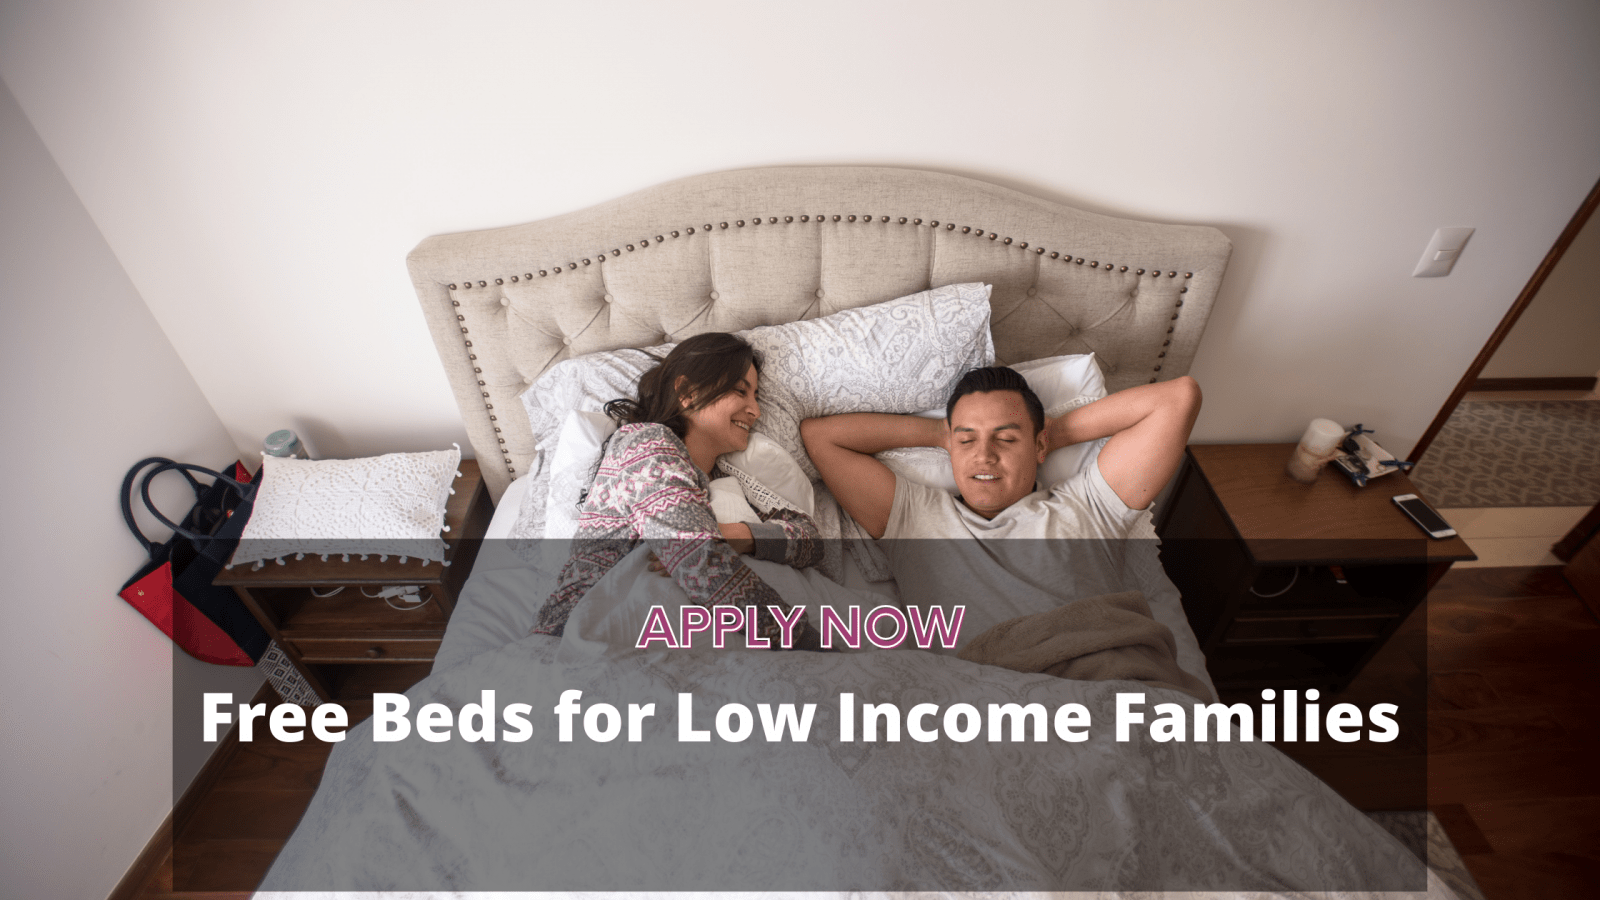 Free Beds for Low Income Families 2020 - 2021